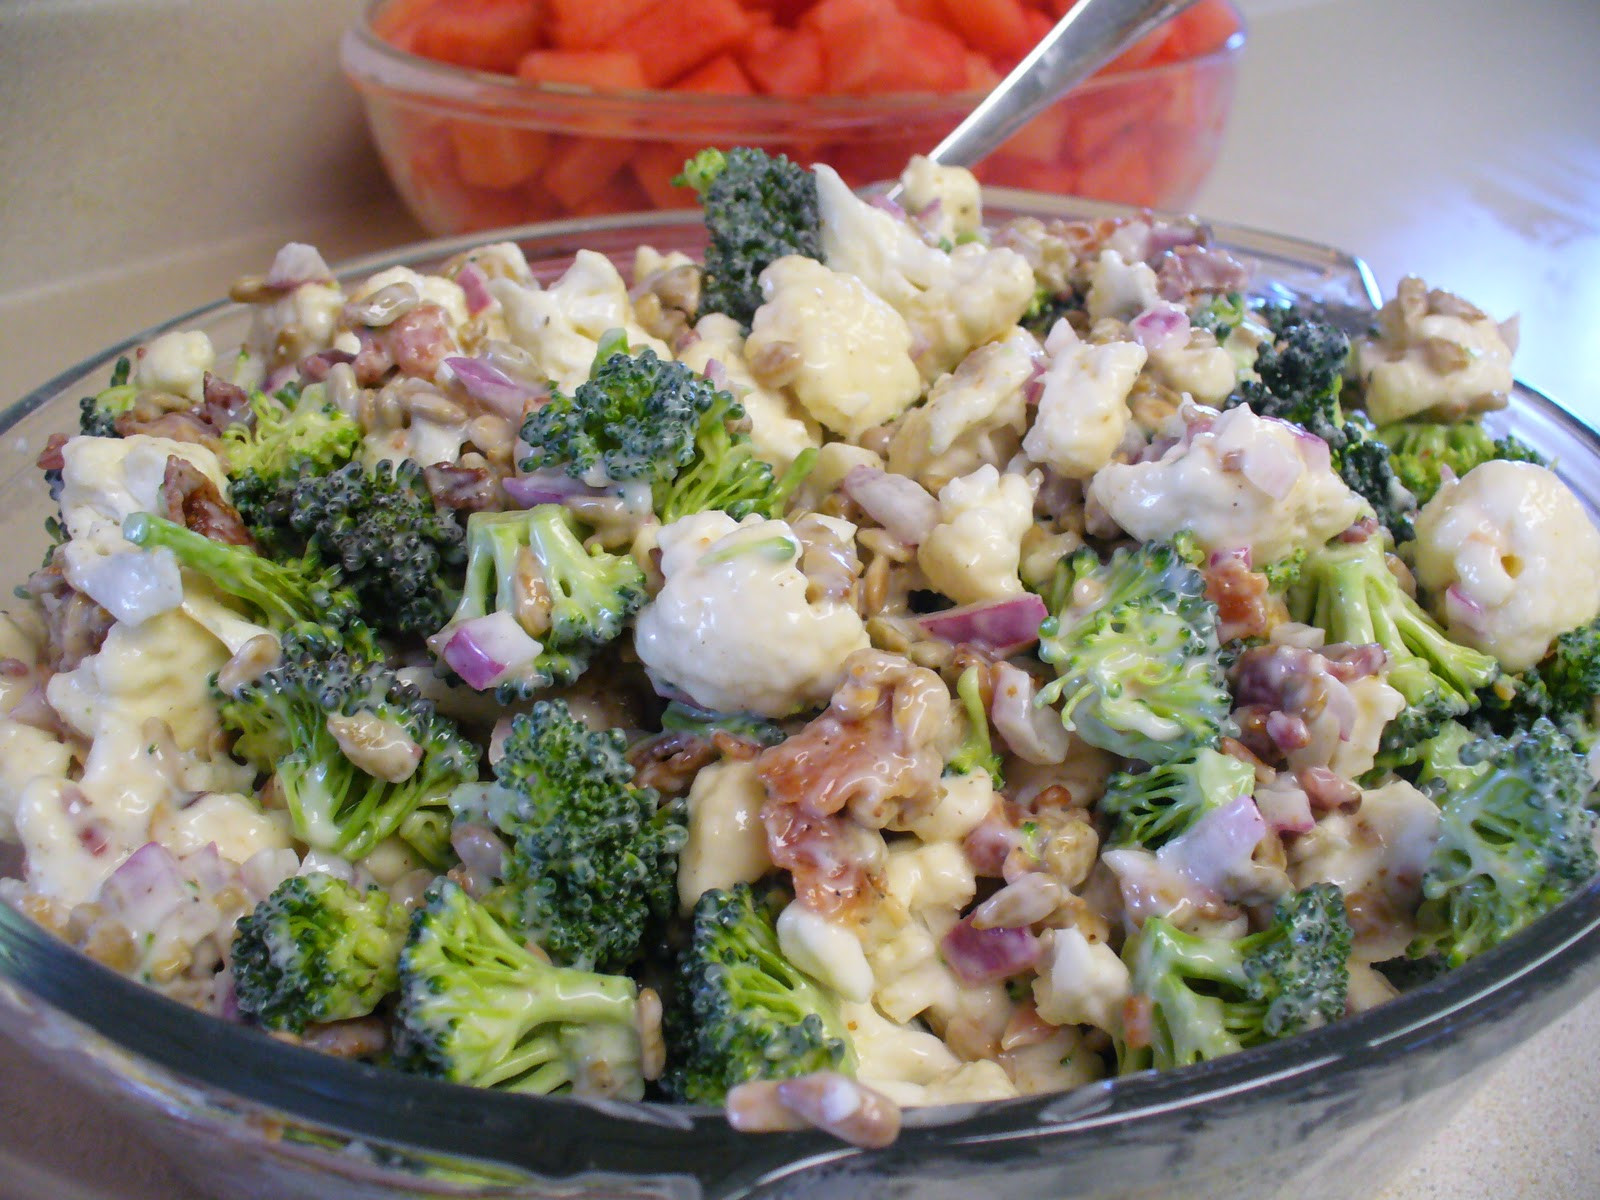 Broccoli And Cauliflower Salad  Out of My Sister s Kitchen Broccoli and Cauliflower Salad